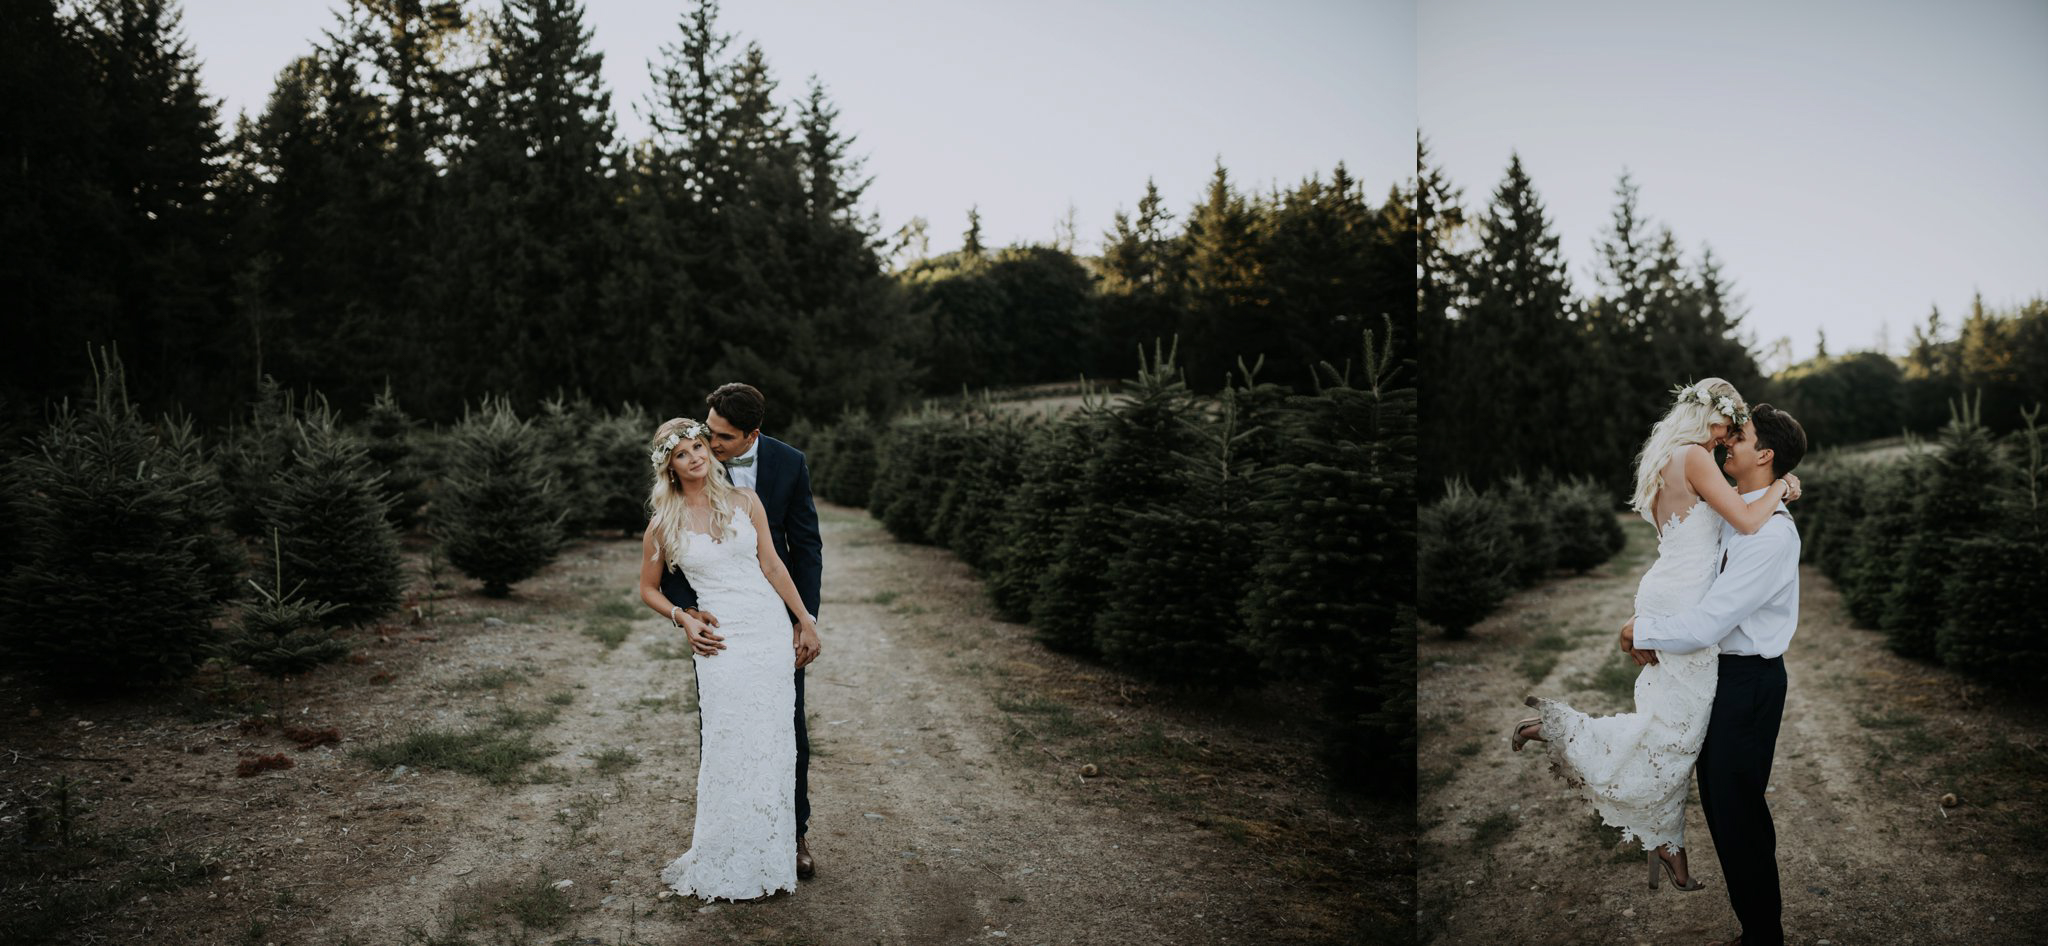 trinity-tree-farm-issaquah-washington-wedding-seattle-lifestyle-photographer-caitlyn-nikula-photography-97.jpg